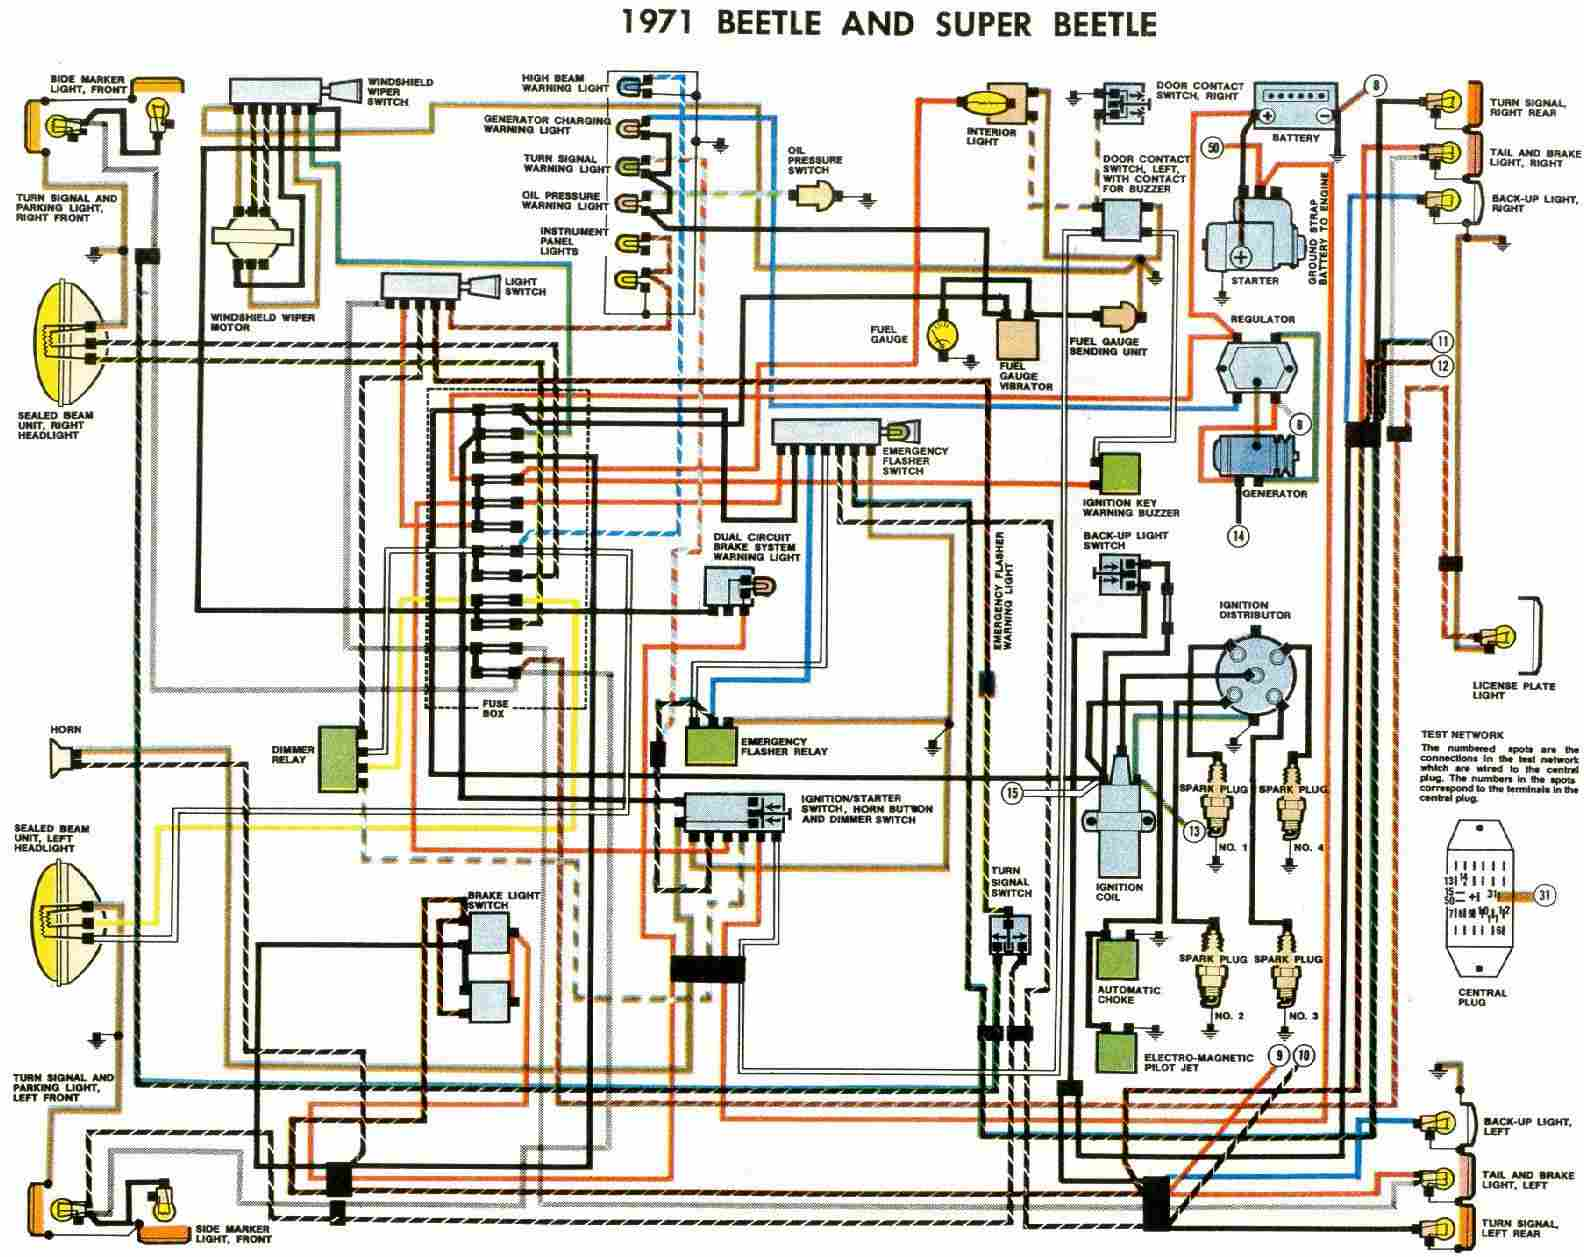 Dshf5pgxceww Wiring Diagram Ge Adora Fridge Library Chevy Generator Vw Beetle And Super 1971 Electrical 1973